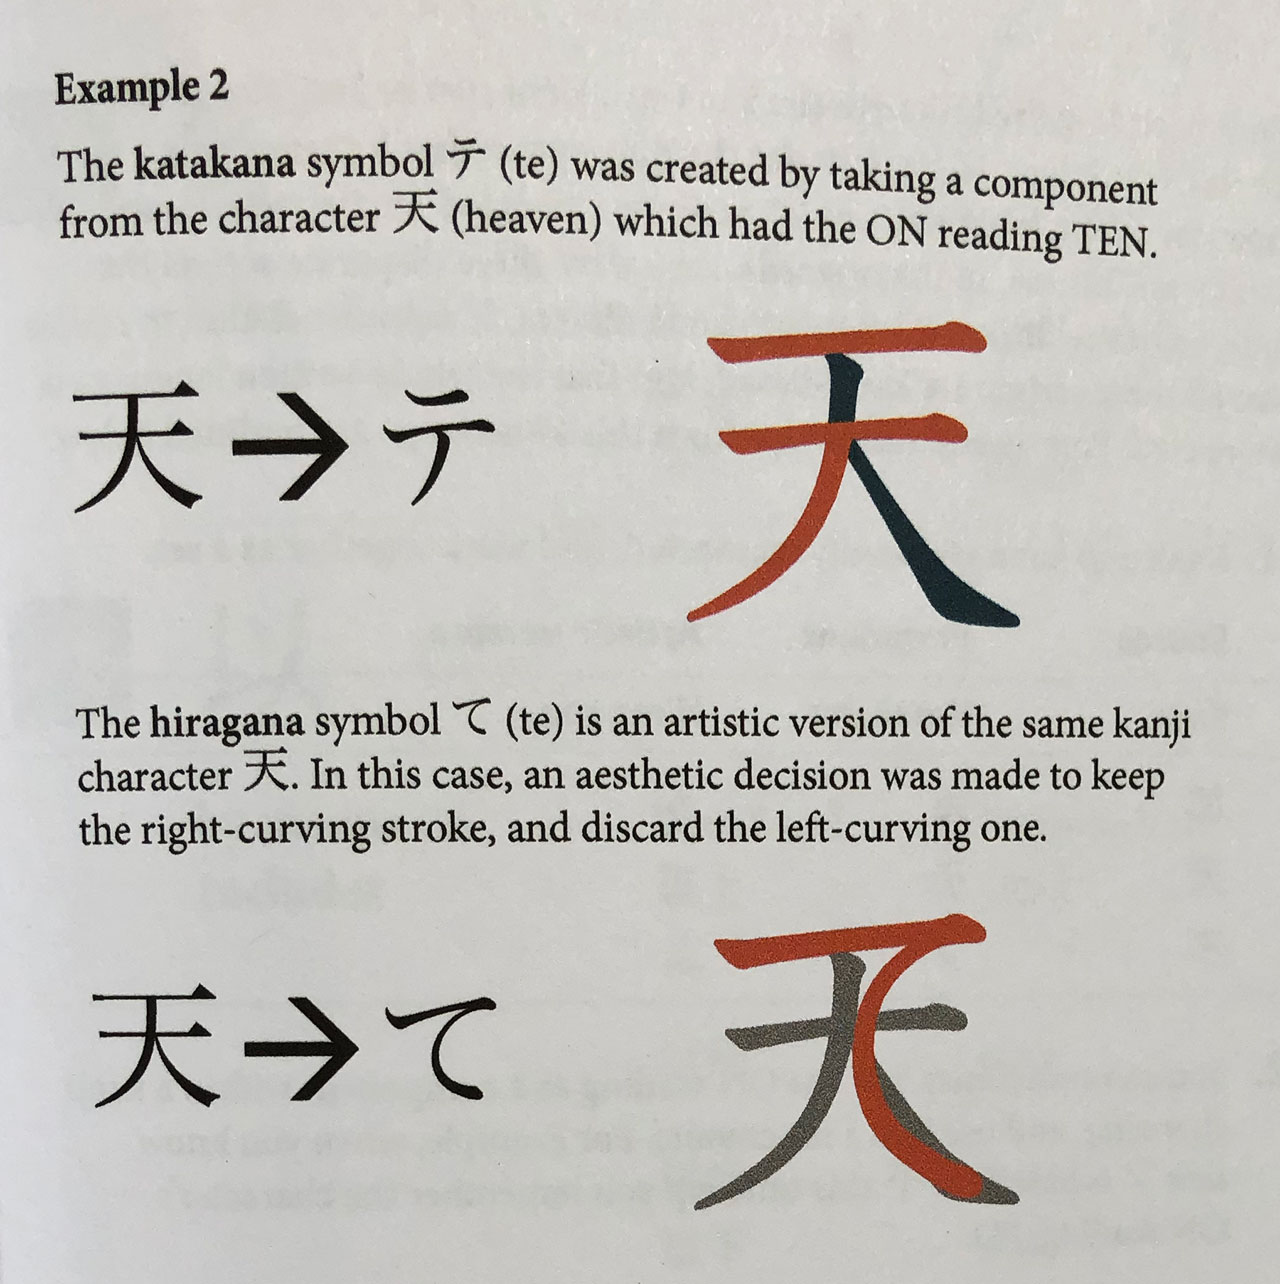 New Japanese Learning Resources: March 2019